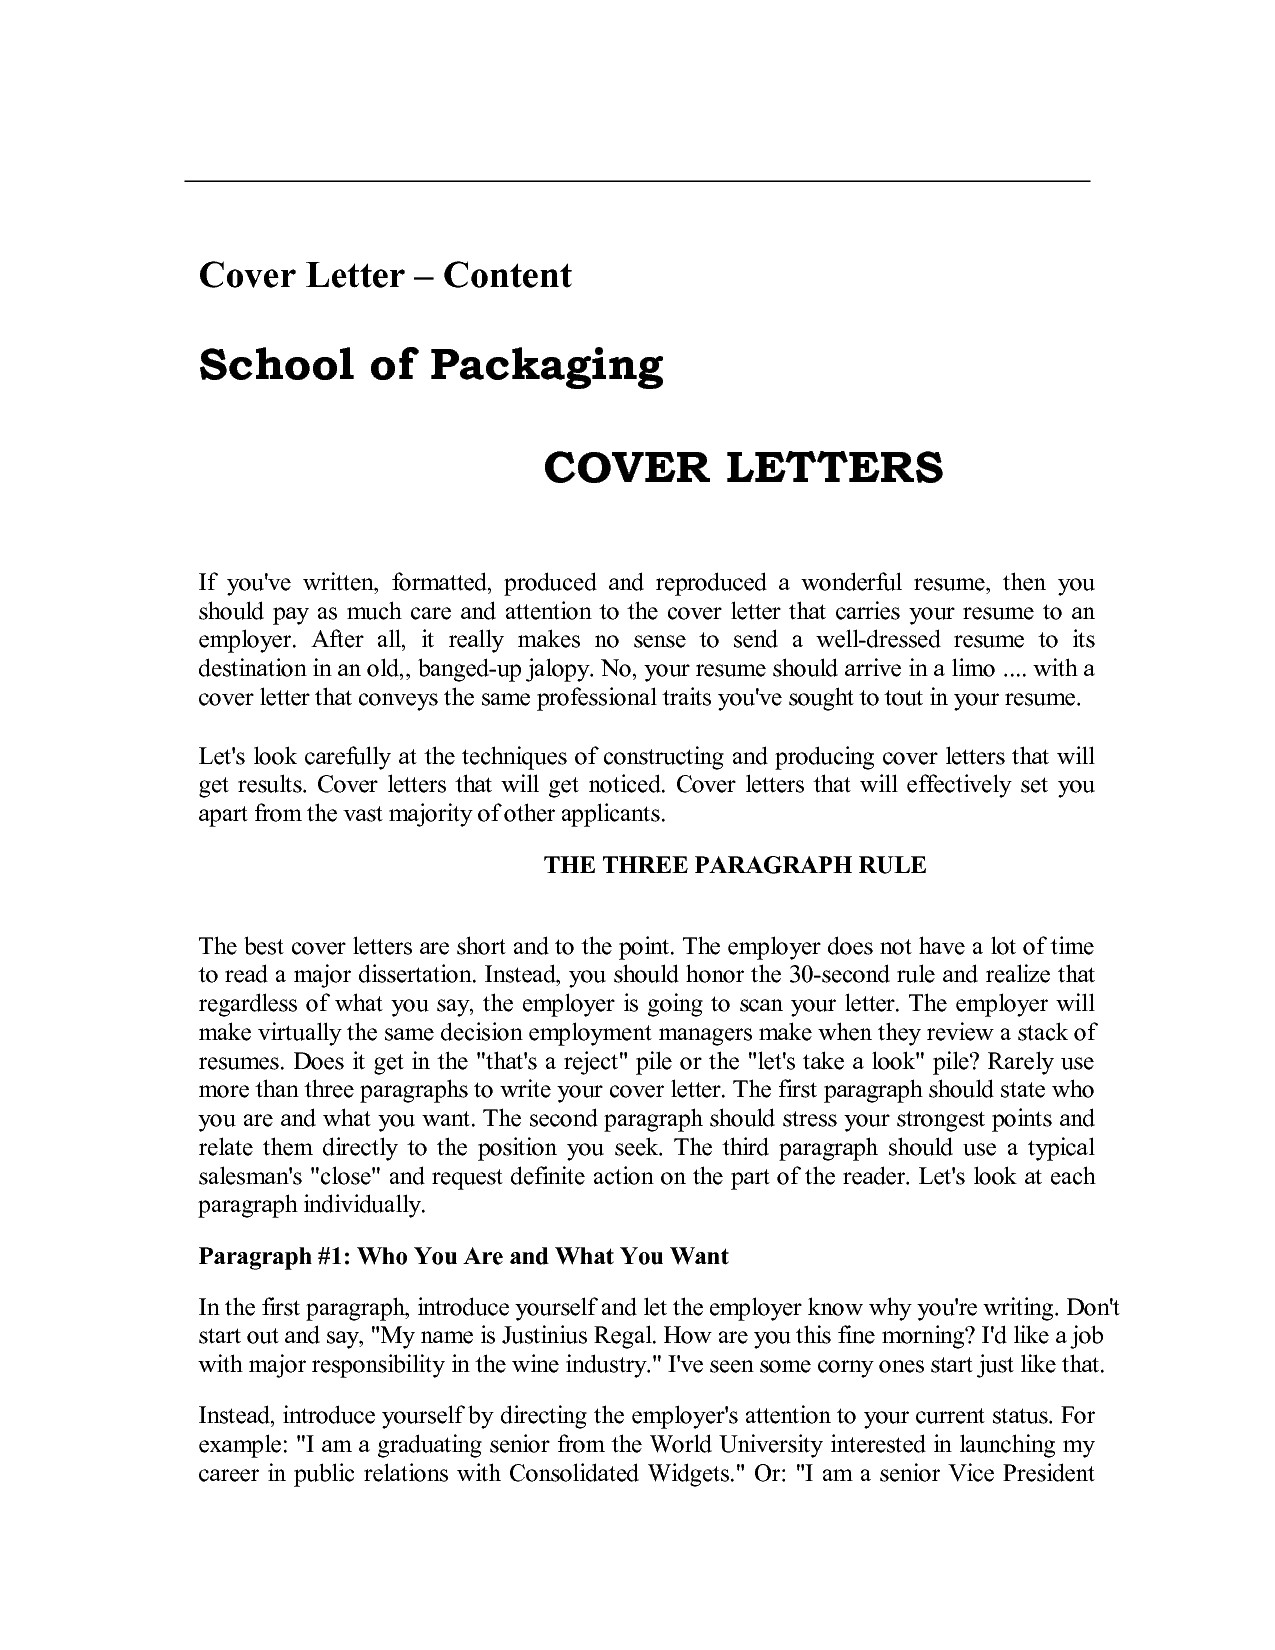 Cover Letter Template Pdf Cover Letters Pdf with Resumecover Letter for Resume Cover